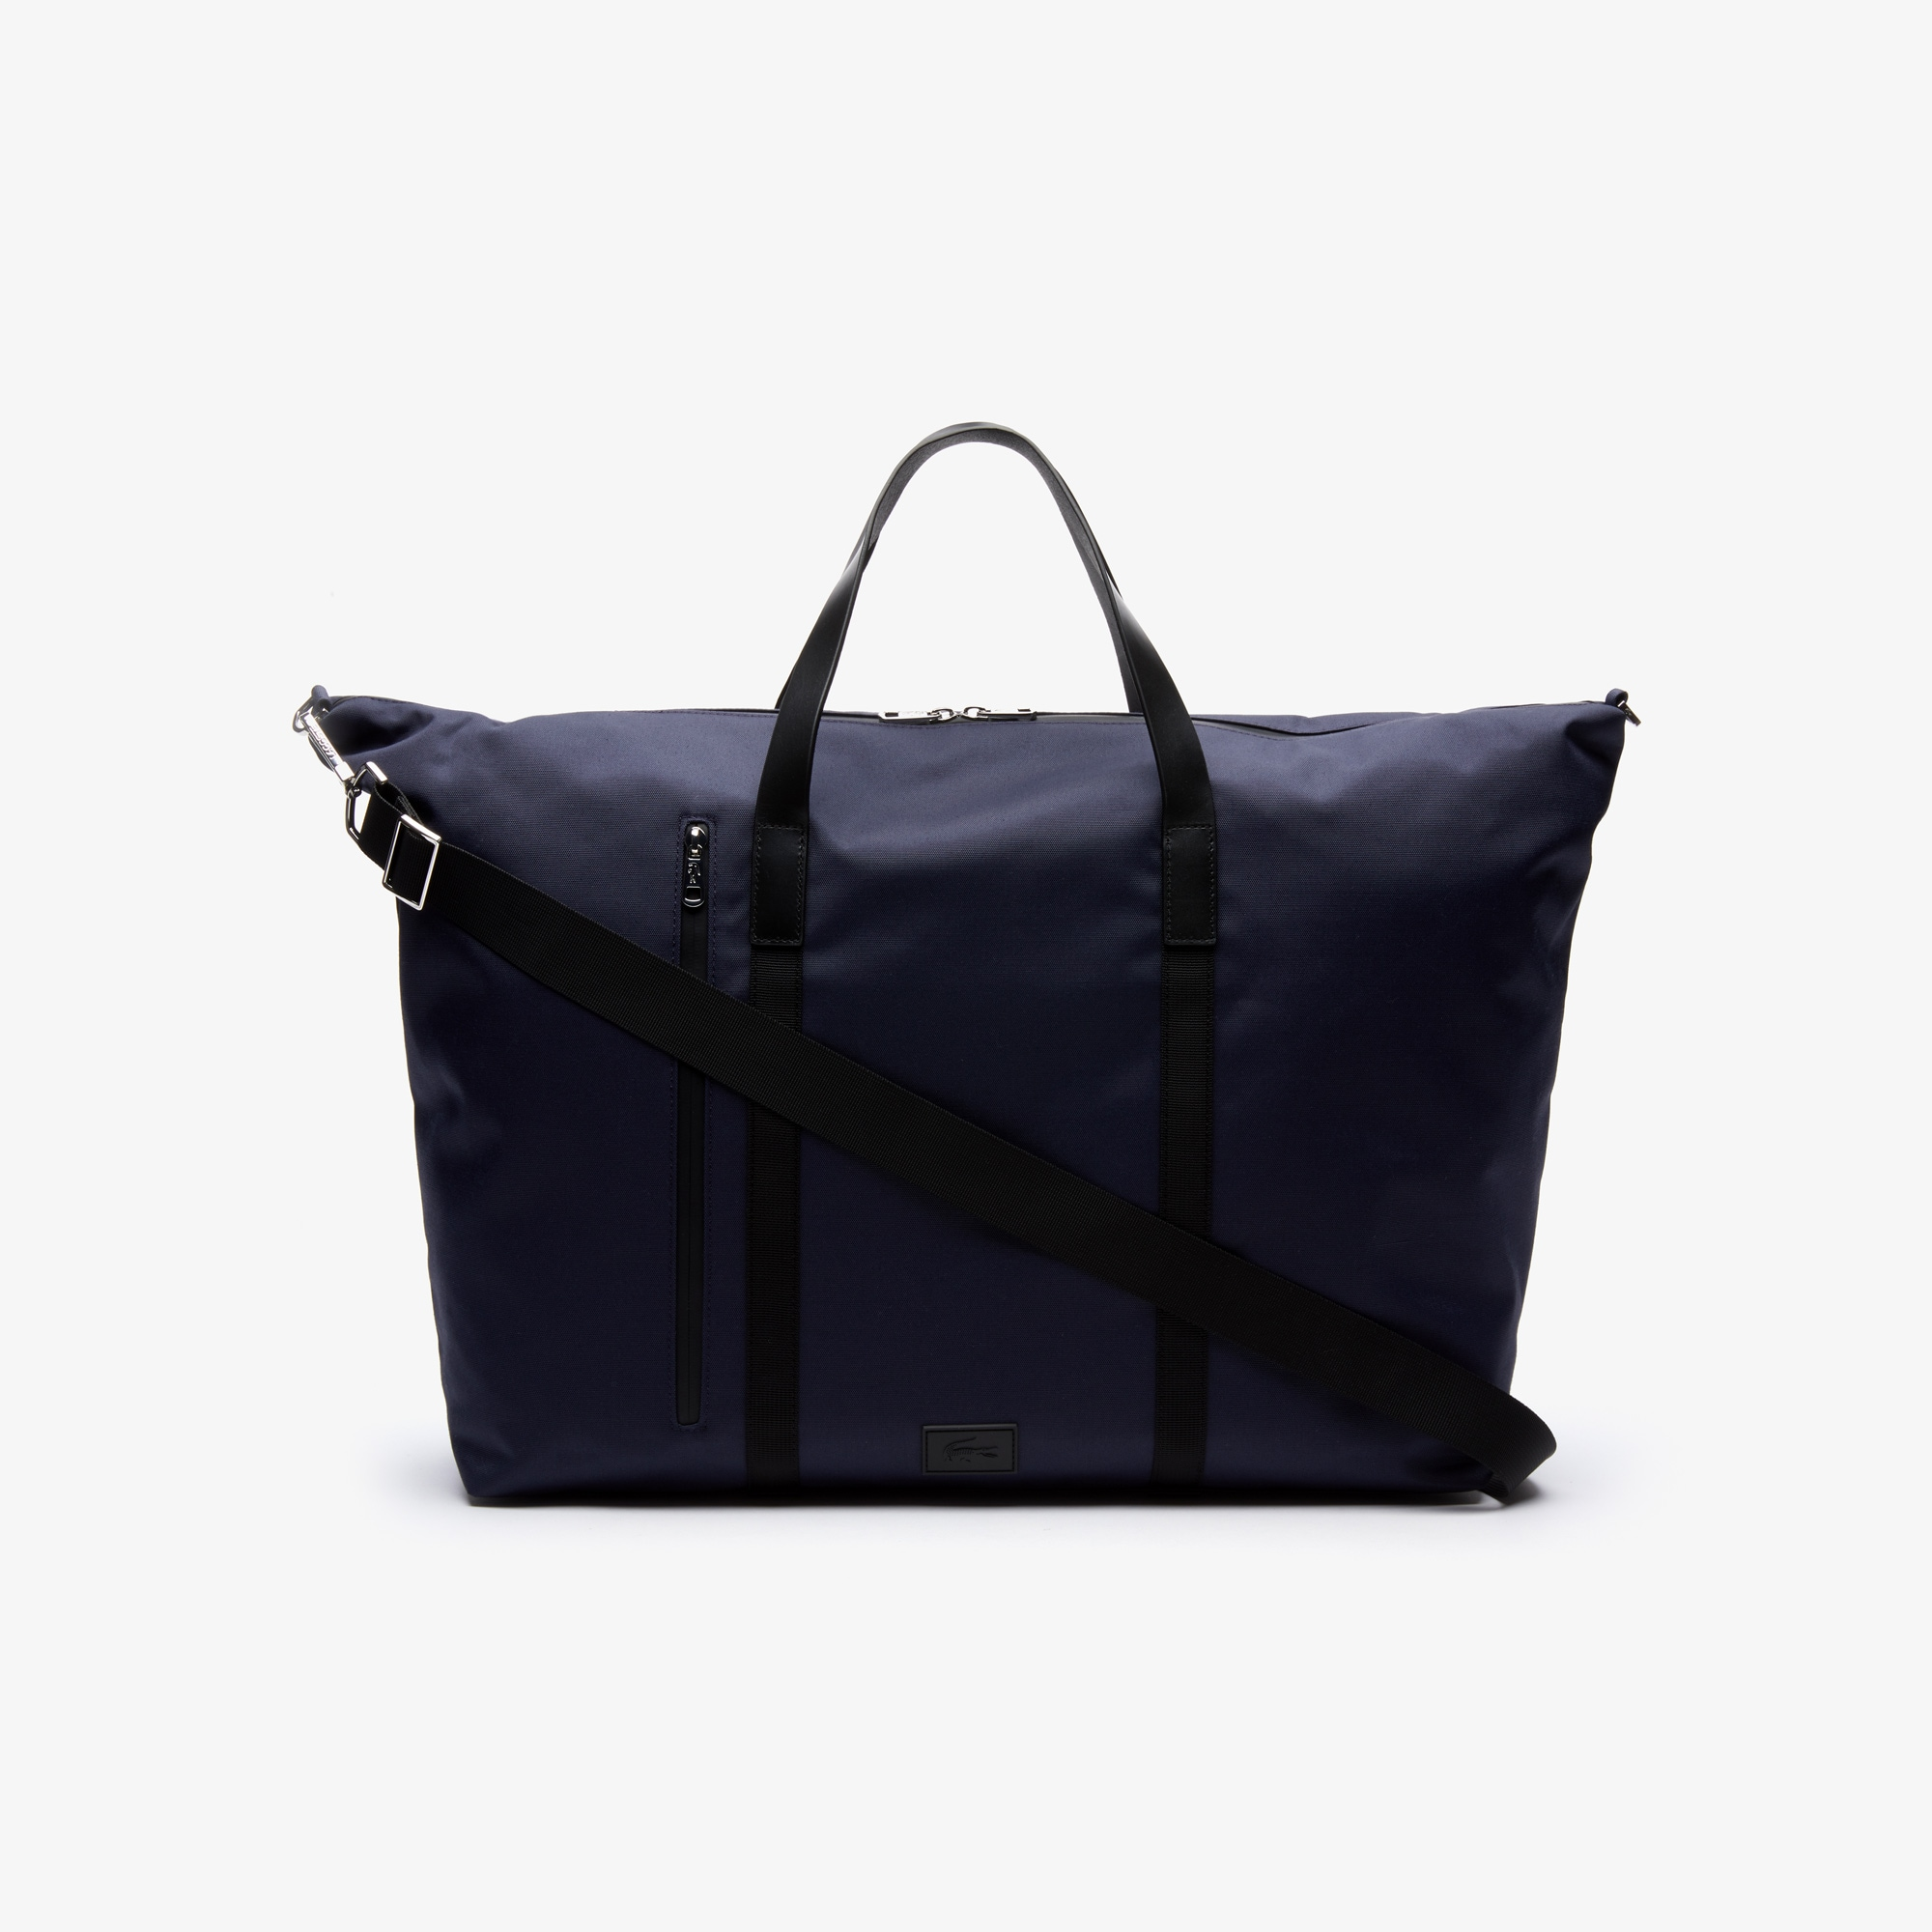 라코스테 말로 가죽 위켄드백 Lacoste Mens Malo Leather Accent Weekend Bag,BLACK IRIS BLACK